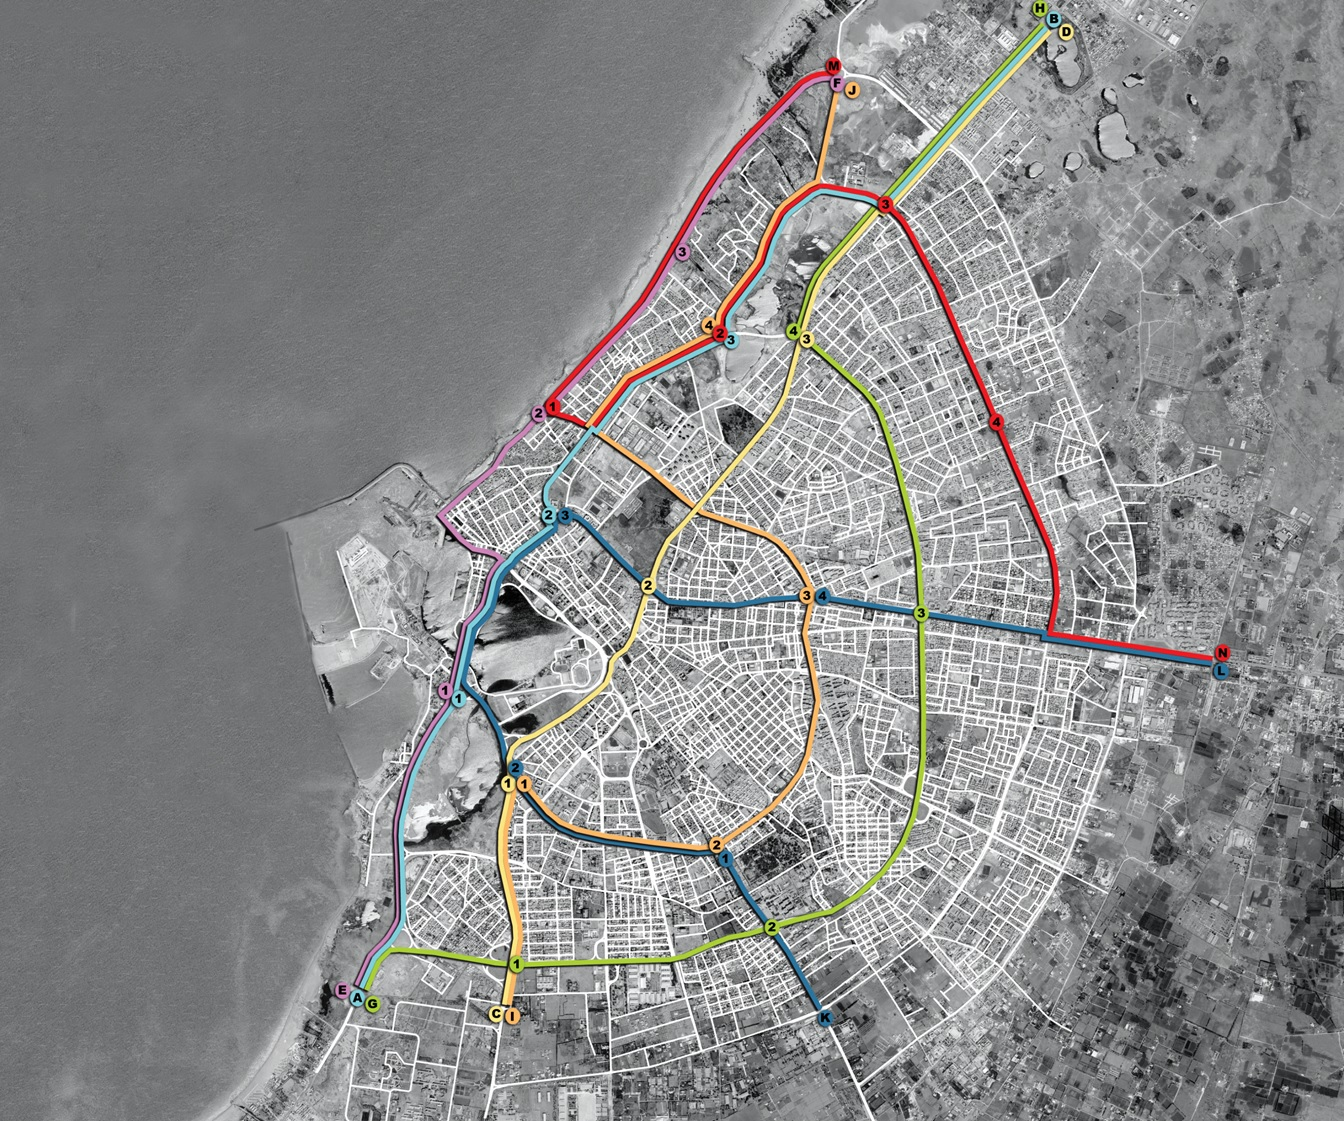 Systematica-Benghazi Mobility Master Plan_Public Transport Network